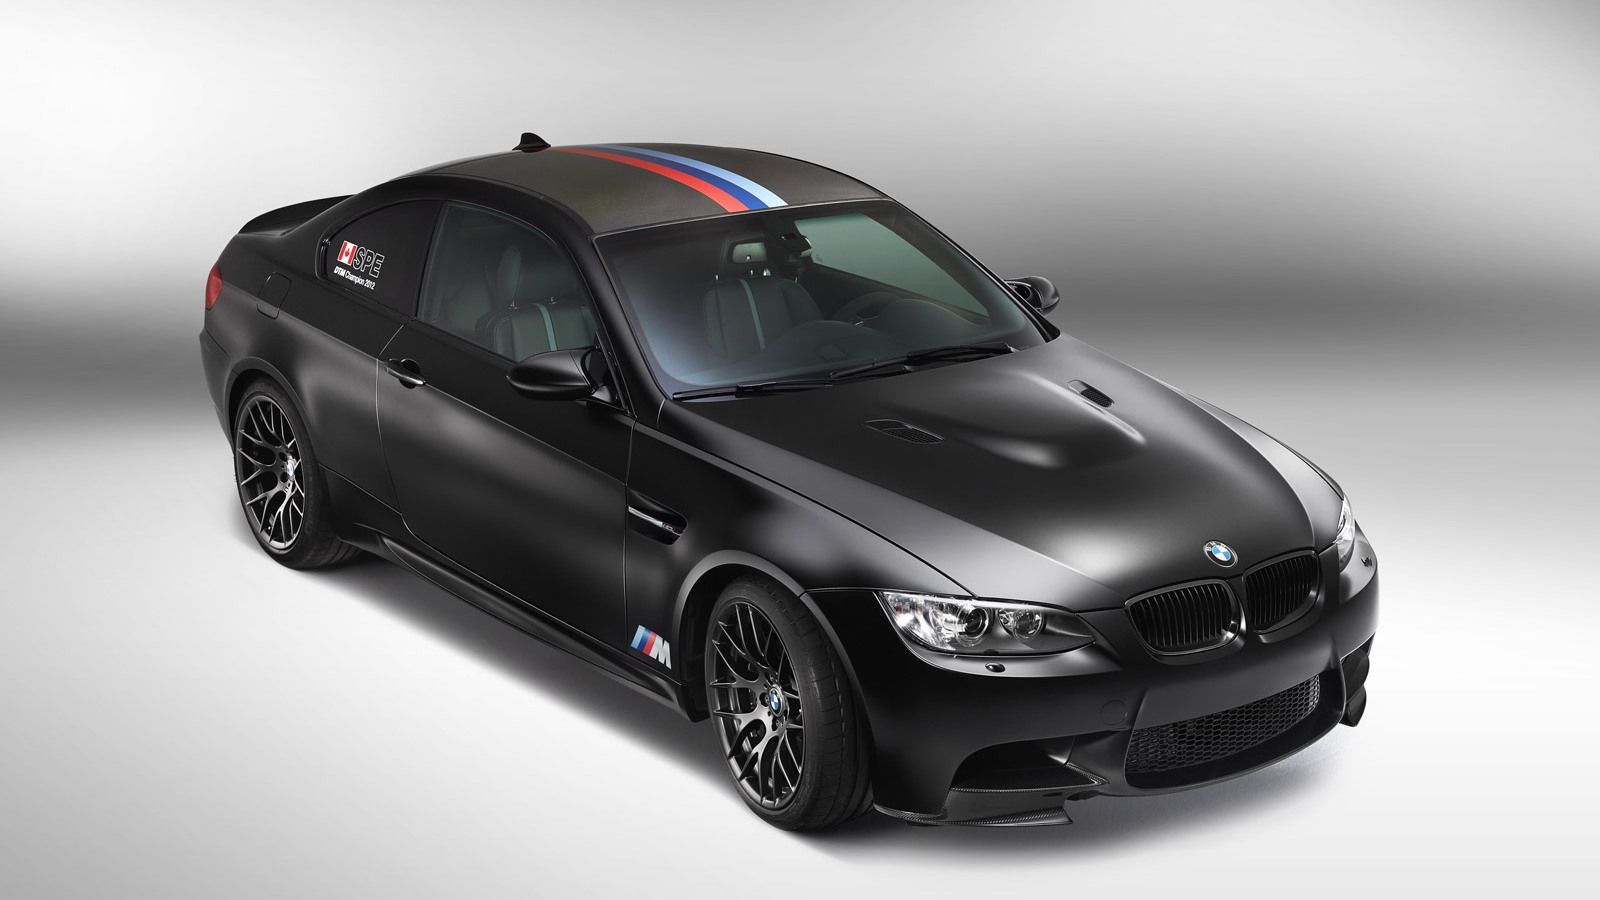 Bmw Celebrates Dtm Win With Special Edition M3 Coupe